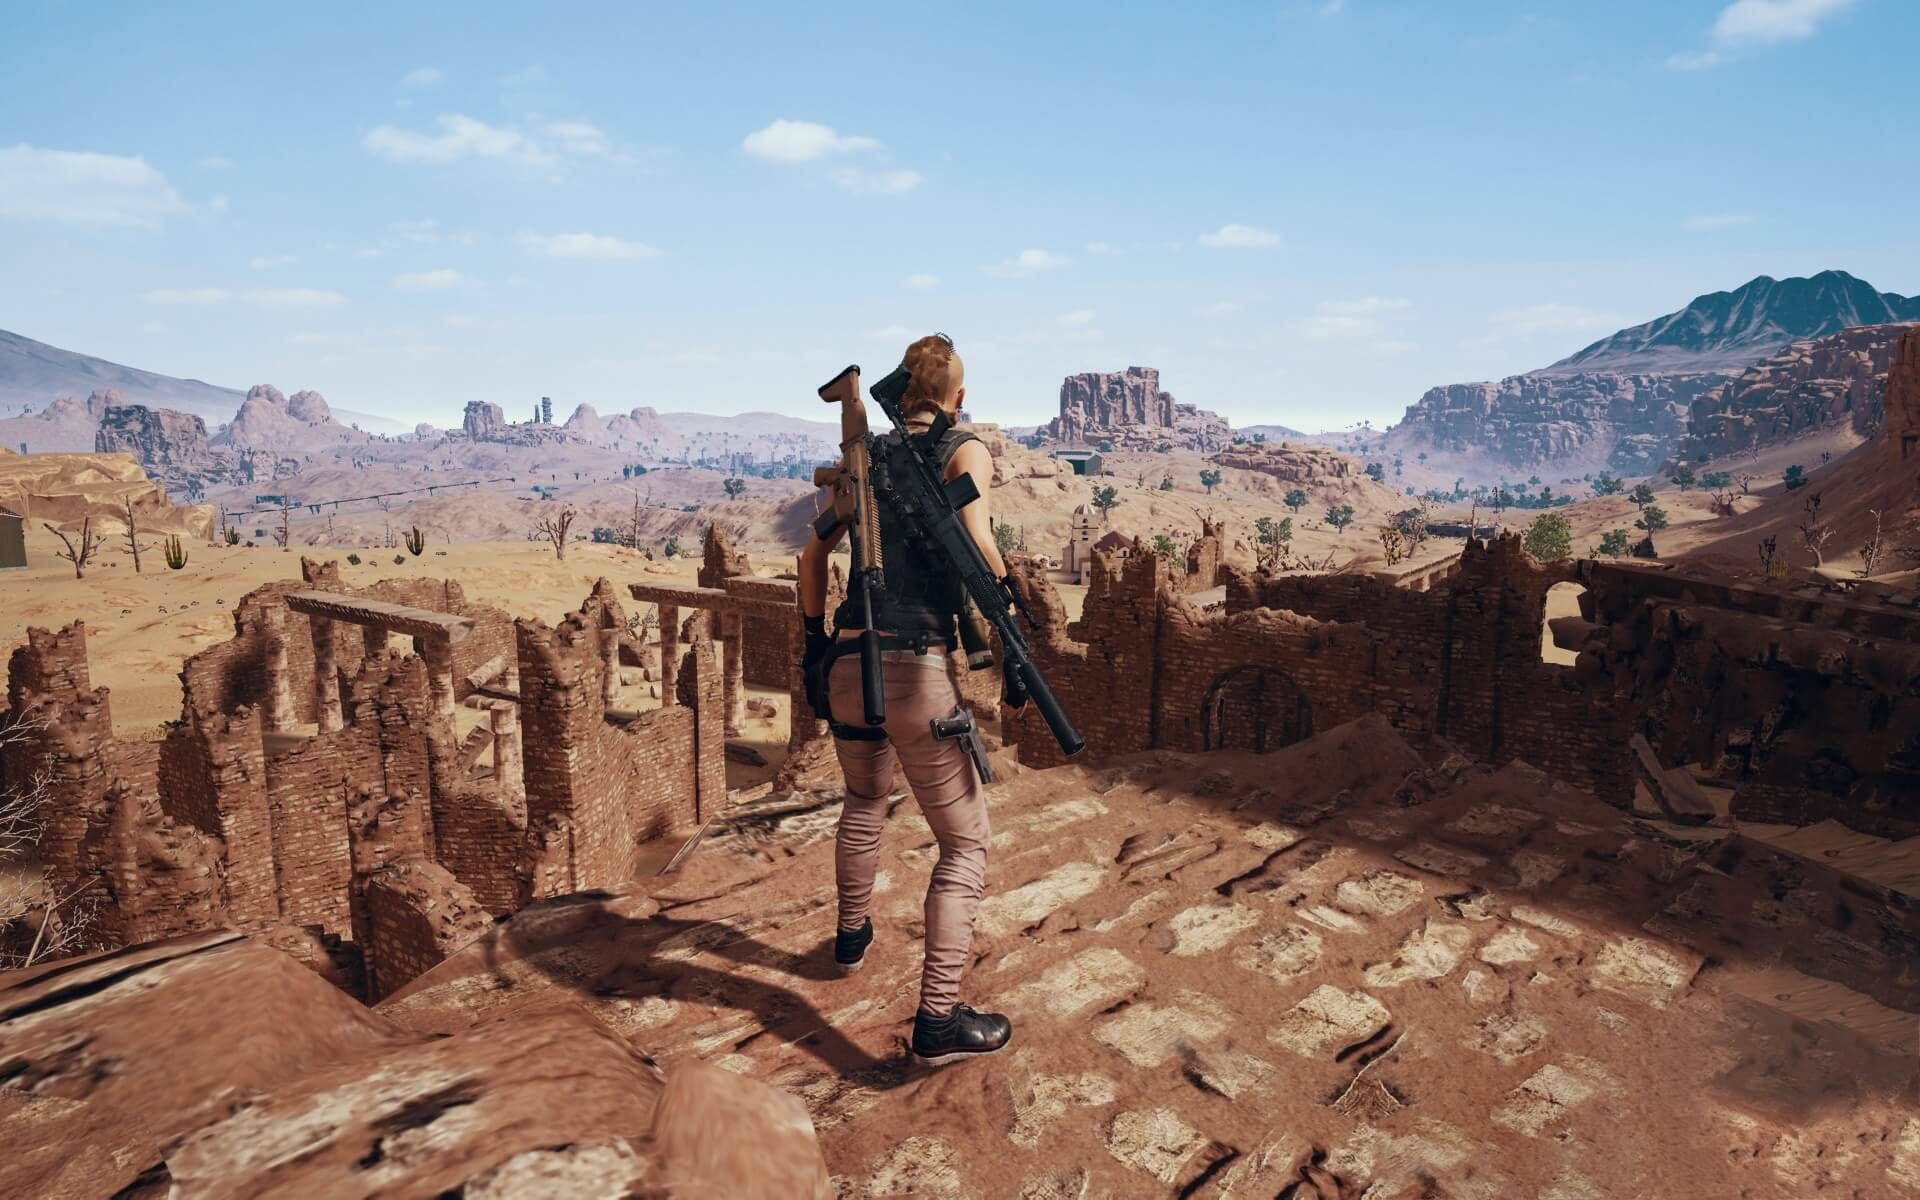 Player Unknown S Battlegrounds Pubg 4k Bike Girl Pubg: Wallpaper Image Result For Pubg Girl Wallpapers Hd Wallpaper4k